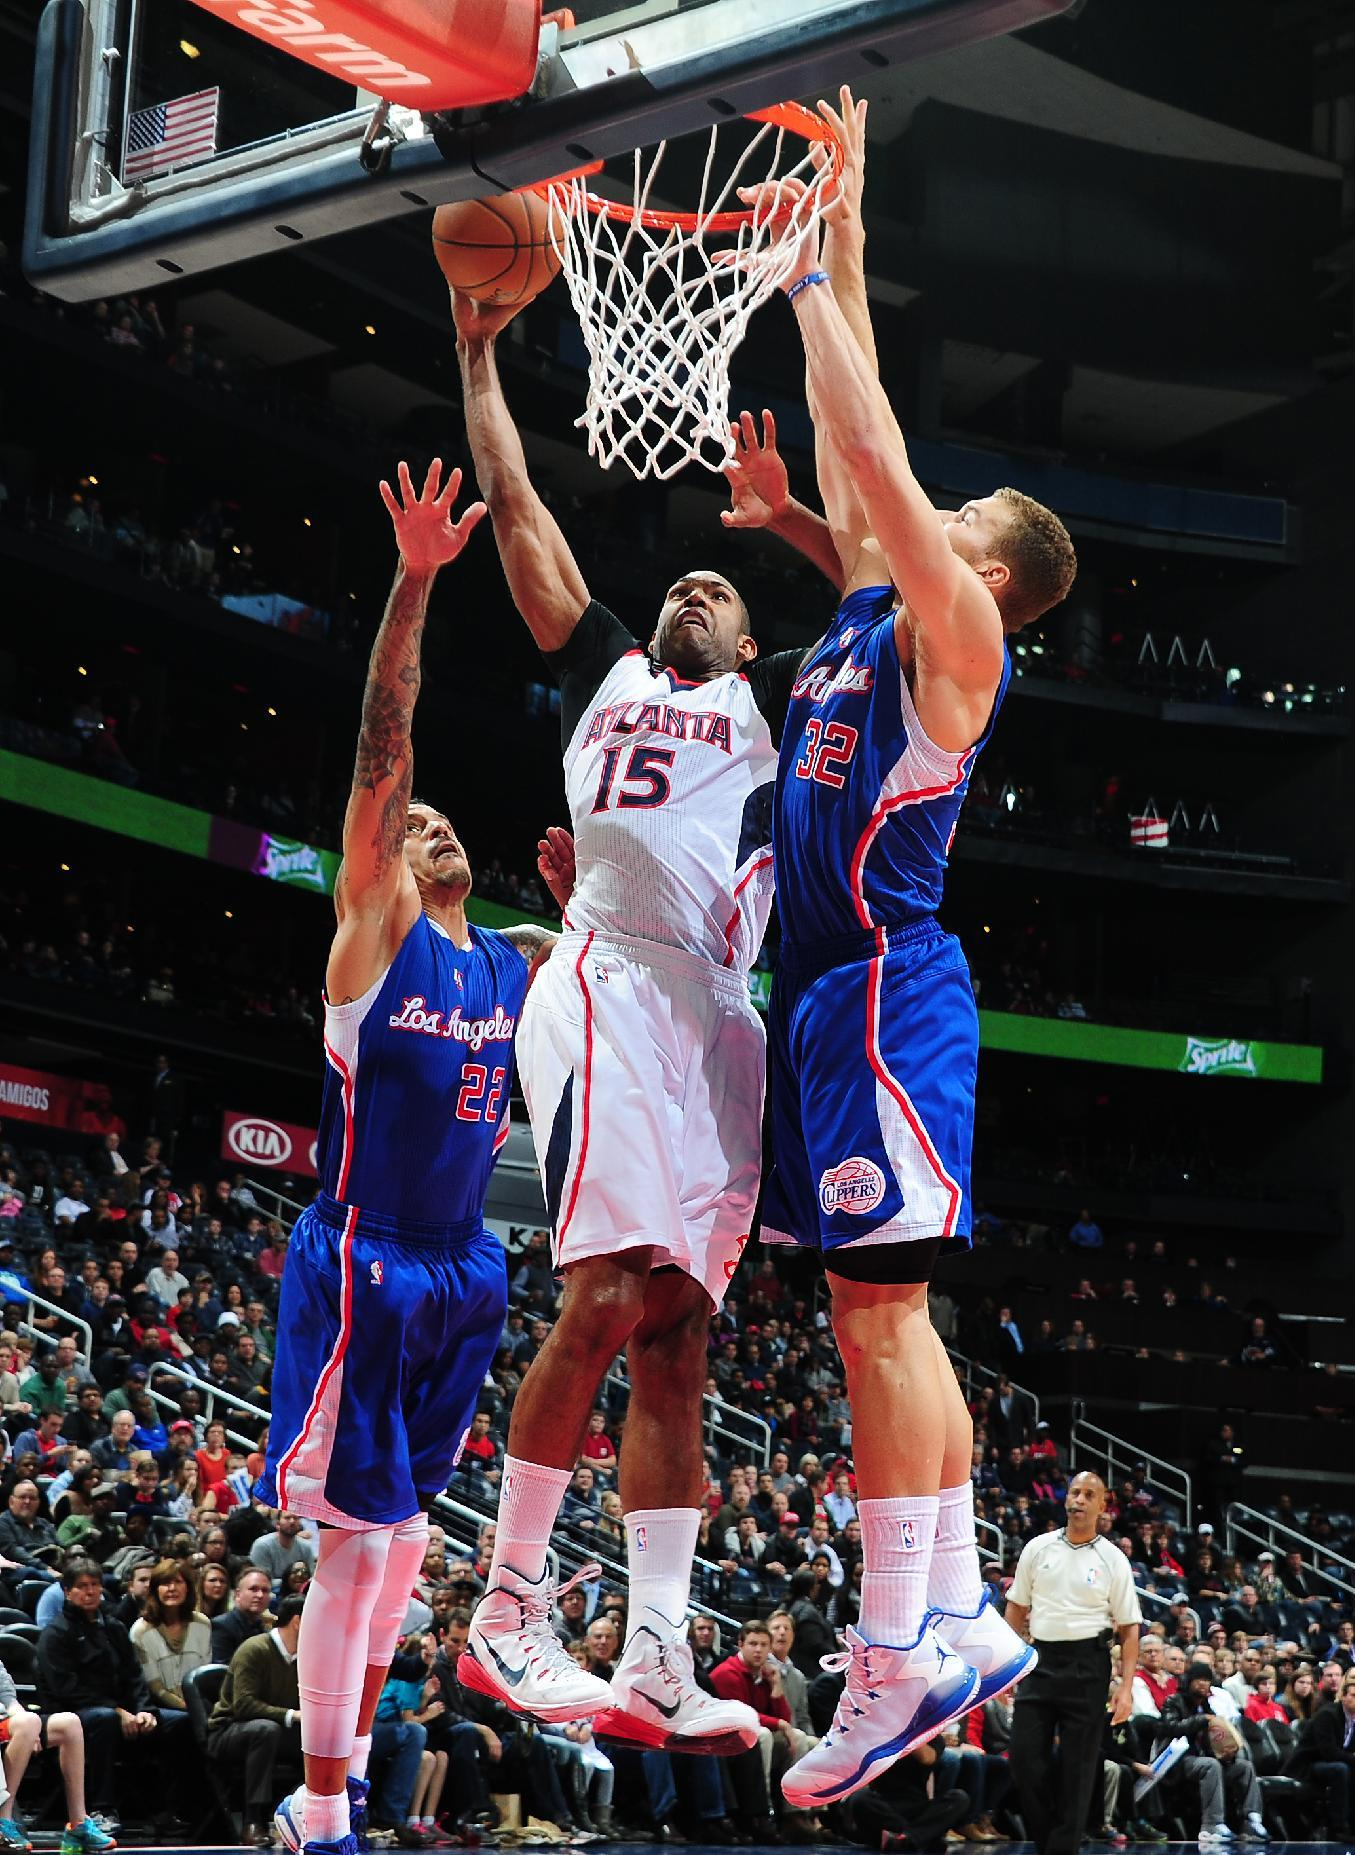 Carroll's 25 lead Hawks past Clippers, 107-104